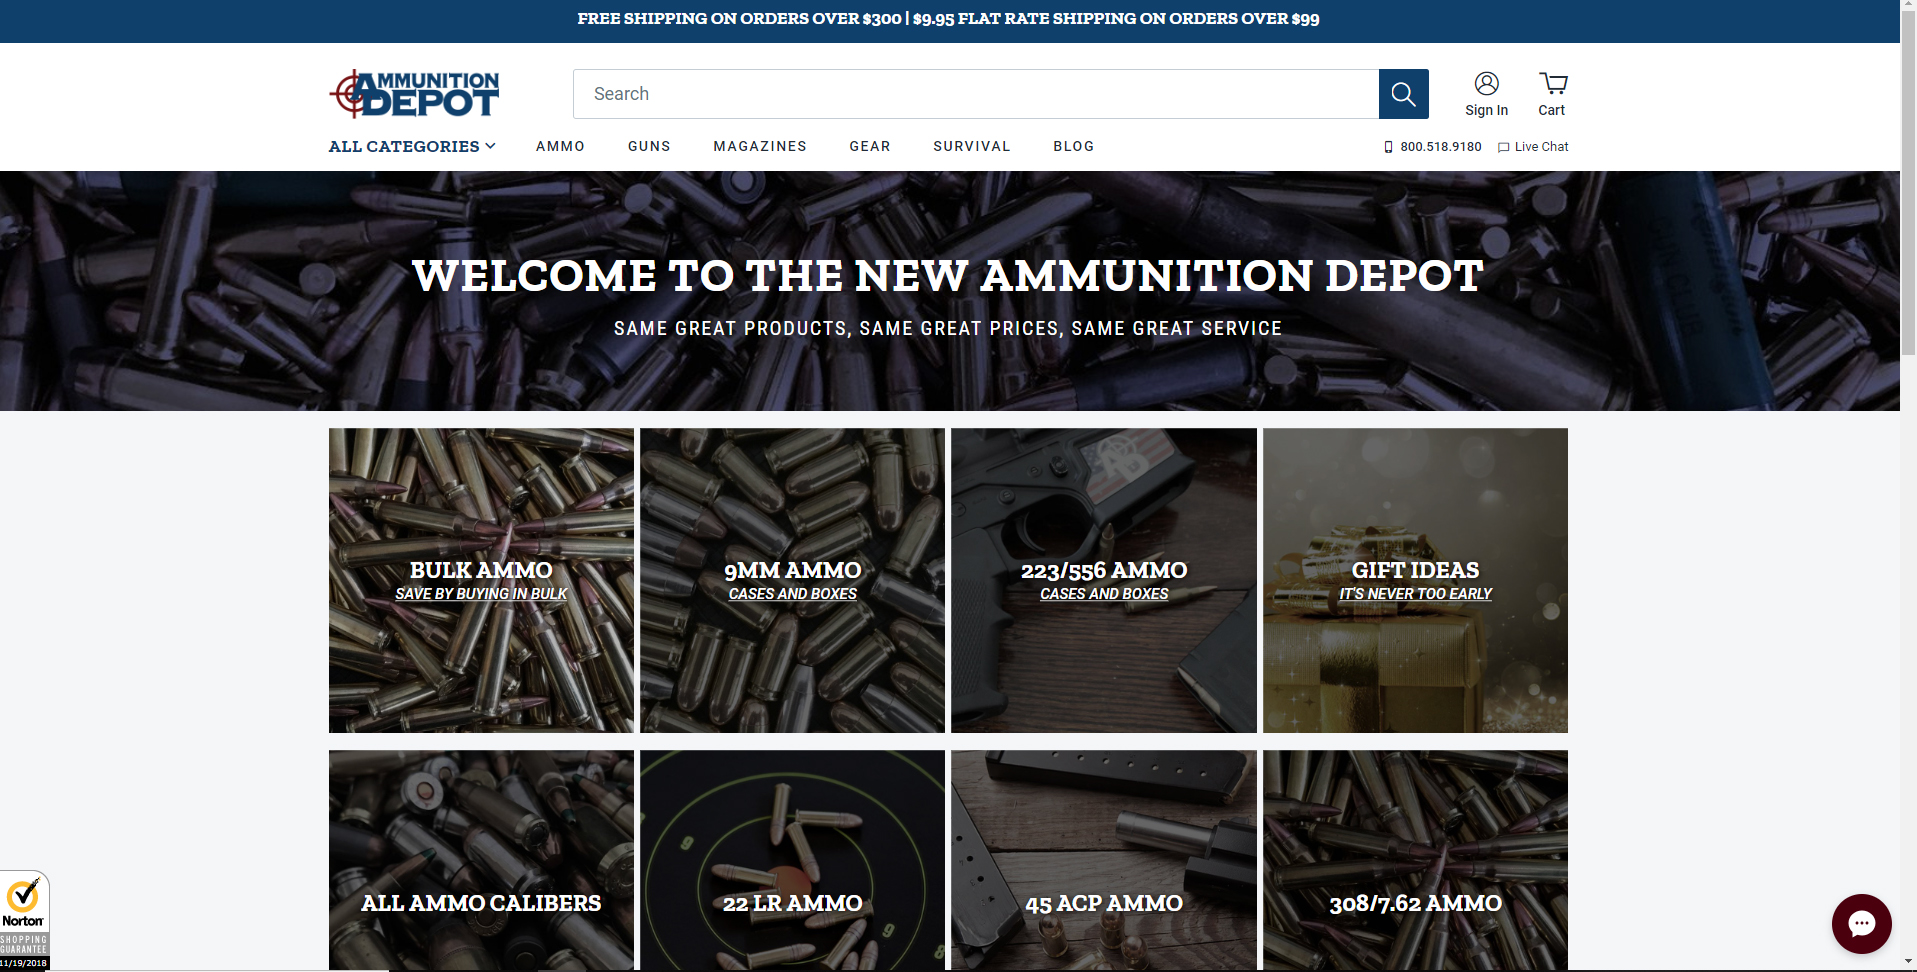 Ammunition Depot Launches New Upgraded Website